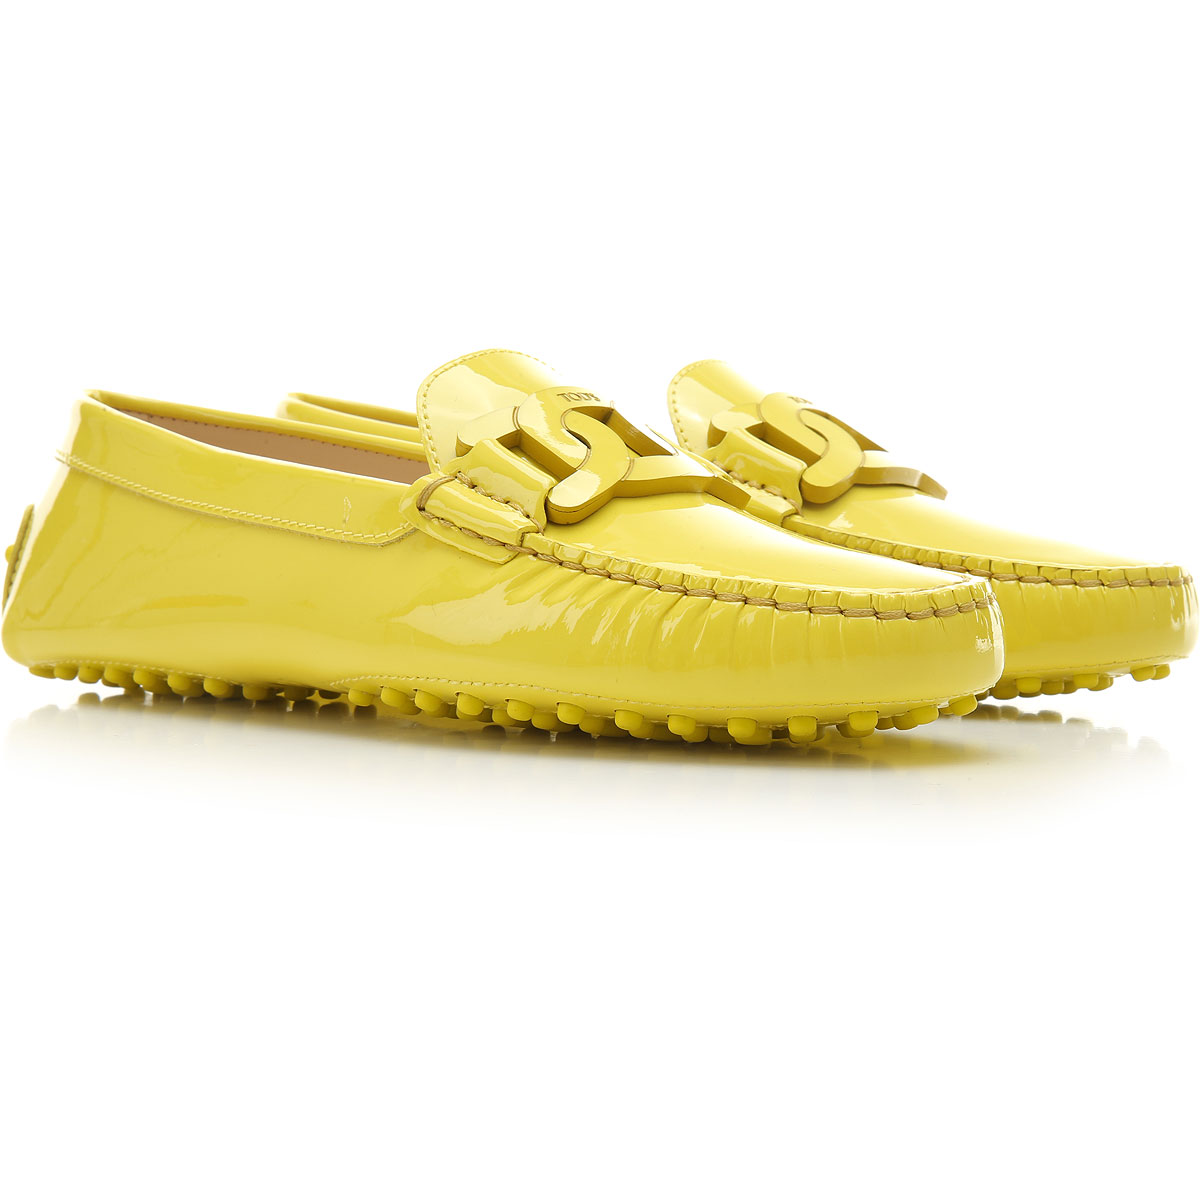 Tods Loafers moterims, Yellow, Patent oda, 2019, 36 37 37.5 38 38.5 39 40